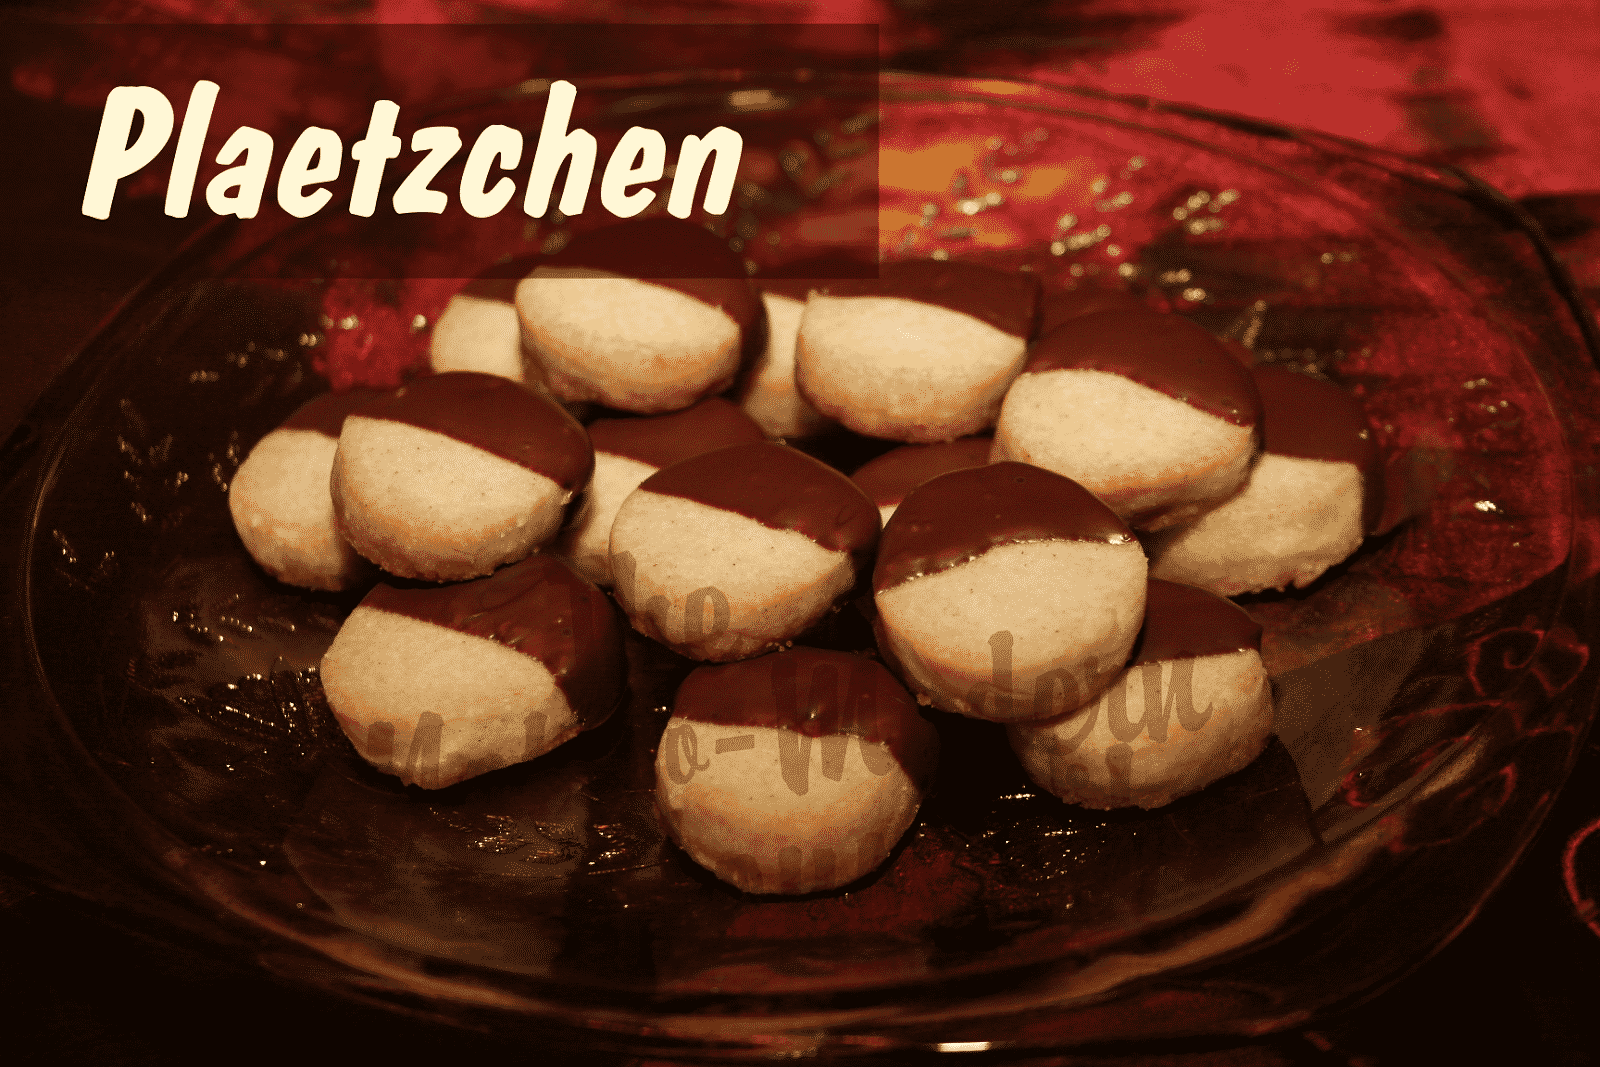 Plaetzchen (German Christmas Cookies)